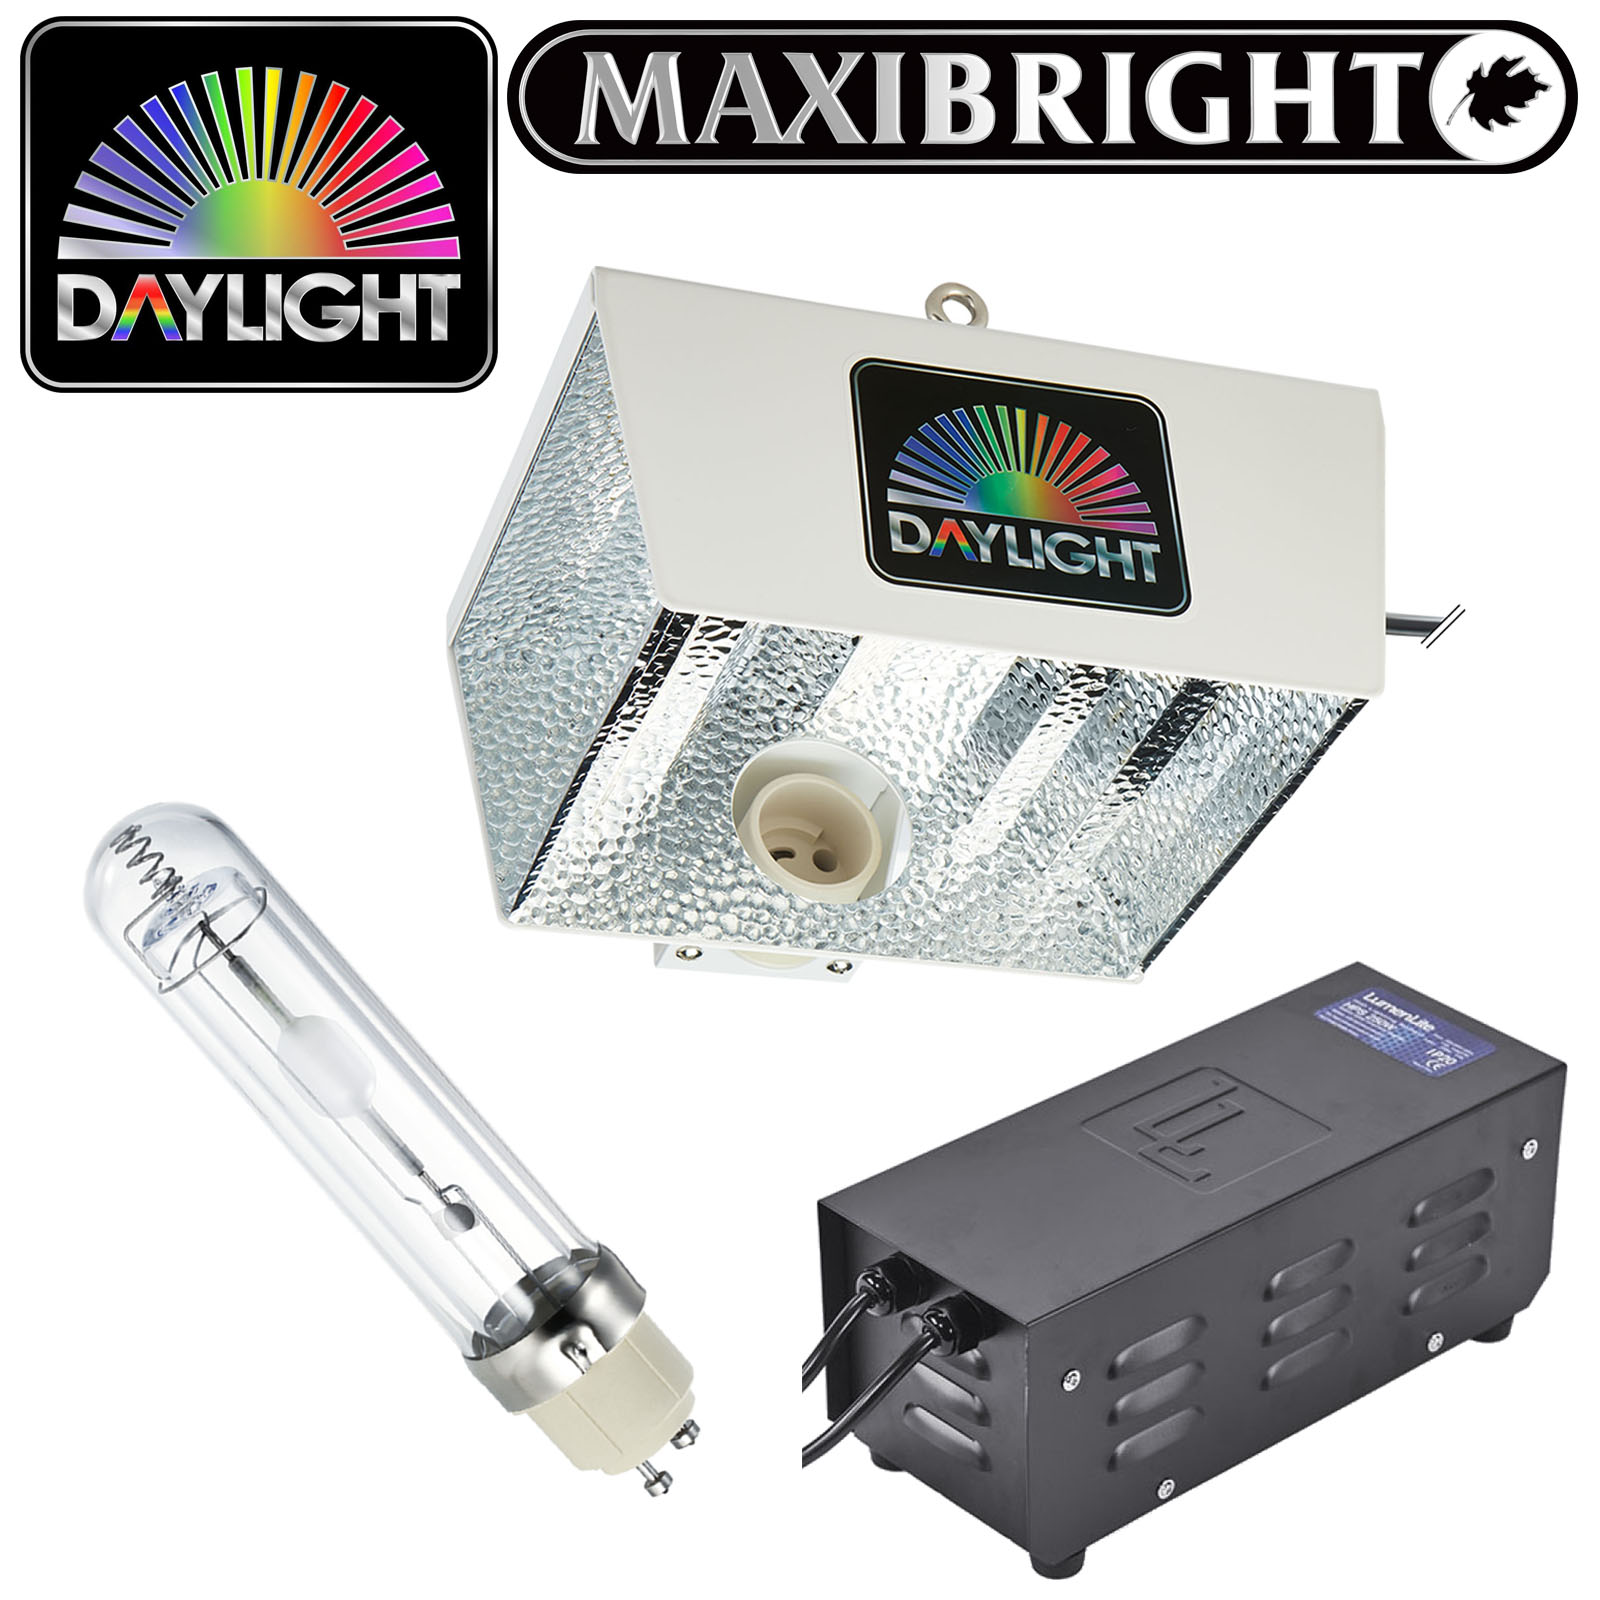 Maxibright Daylight 315W Grow Lighting Kit Reflector Ballast Lamp Combo Setup